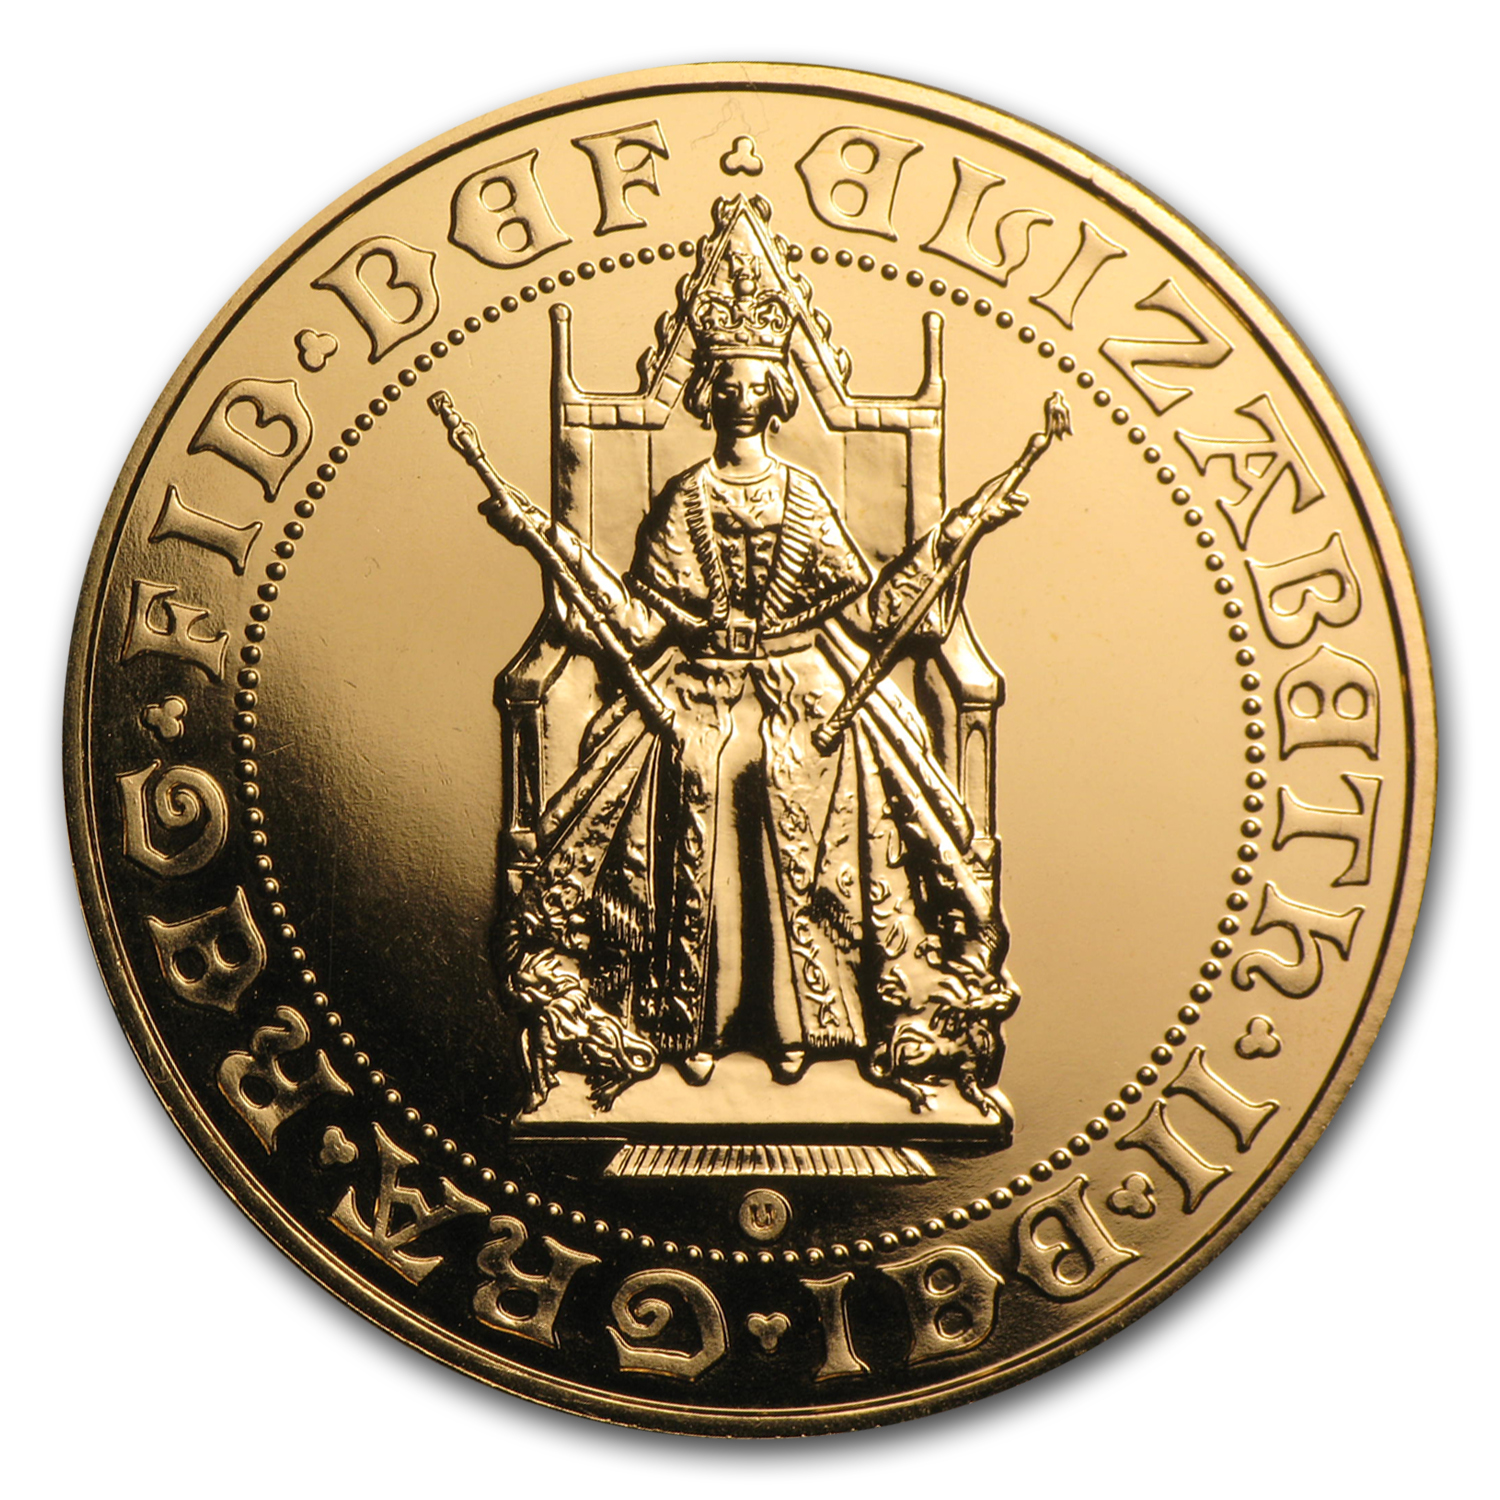 1989 Great Britain Gold £5 BU (500th Anniv)